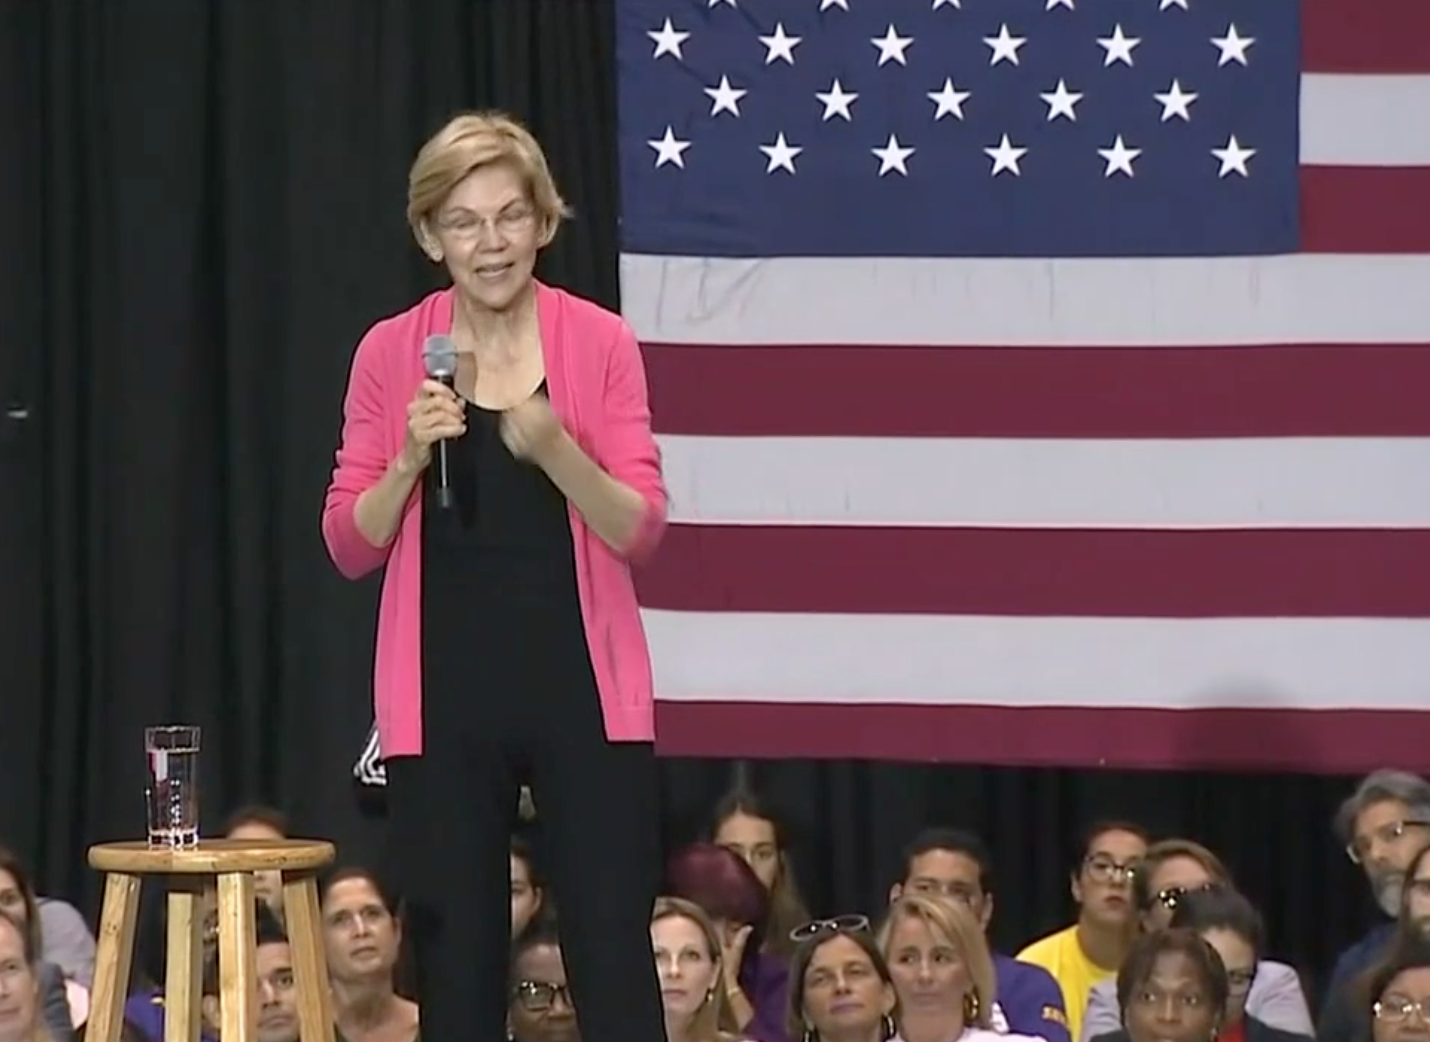 Watch: Elizabeth Warren holds a town hall in Florida (CNN Newsource)